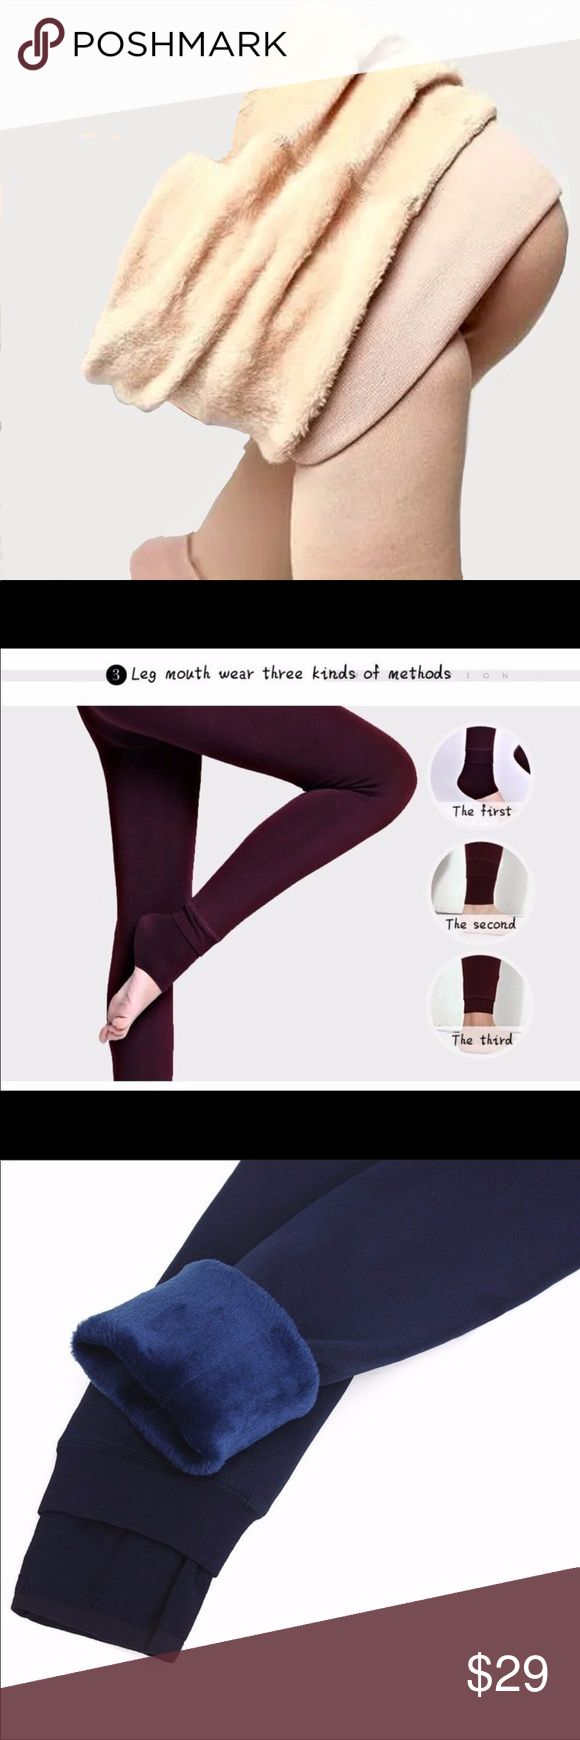 🆕JUST IN🆕5🌟Rated🌟Fur Lined KHAKI Leggings 💜🆕JUST IN🆕5🌟Rated🌟Fur Lined KHAKI Leggings Color ~ Khaki Fabric ~ Cotton/Polyester Knit  Simply to DIE for!! Über comfortable, you'll want to LIVE in these!! Hottest Fall trend!! Get them while you can!!! Benson Boutique Pants Leggings